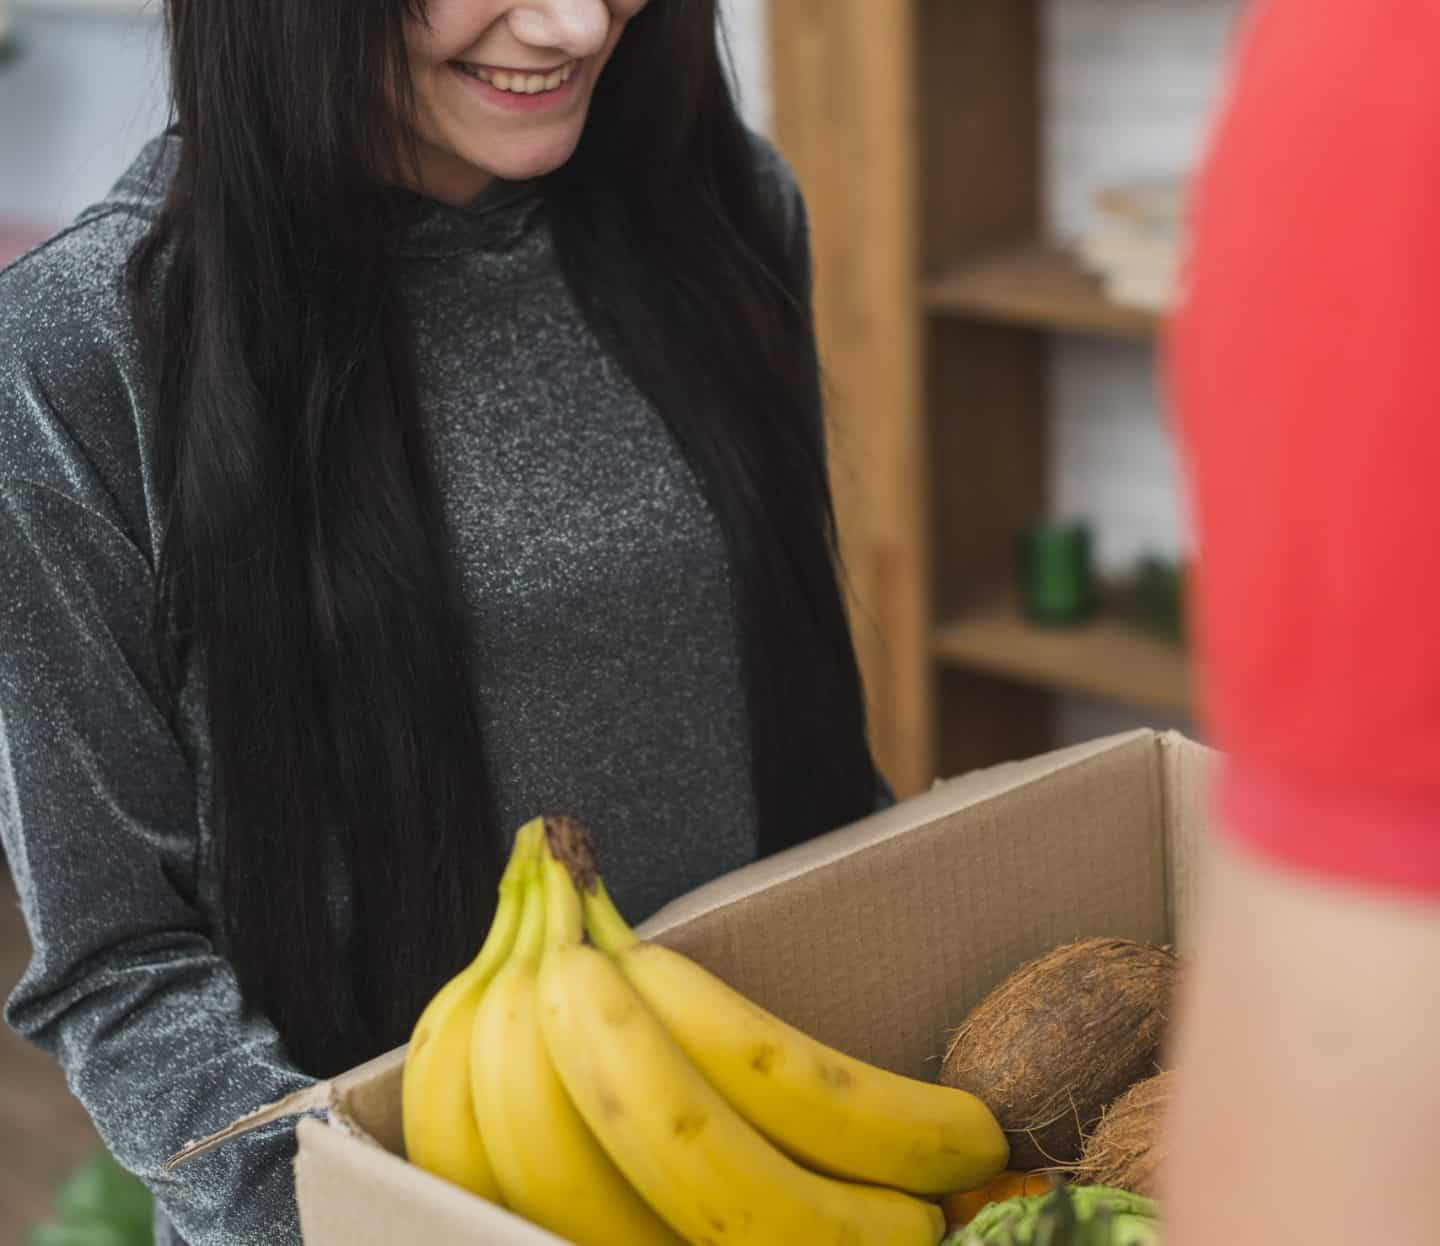 woman receives food box